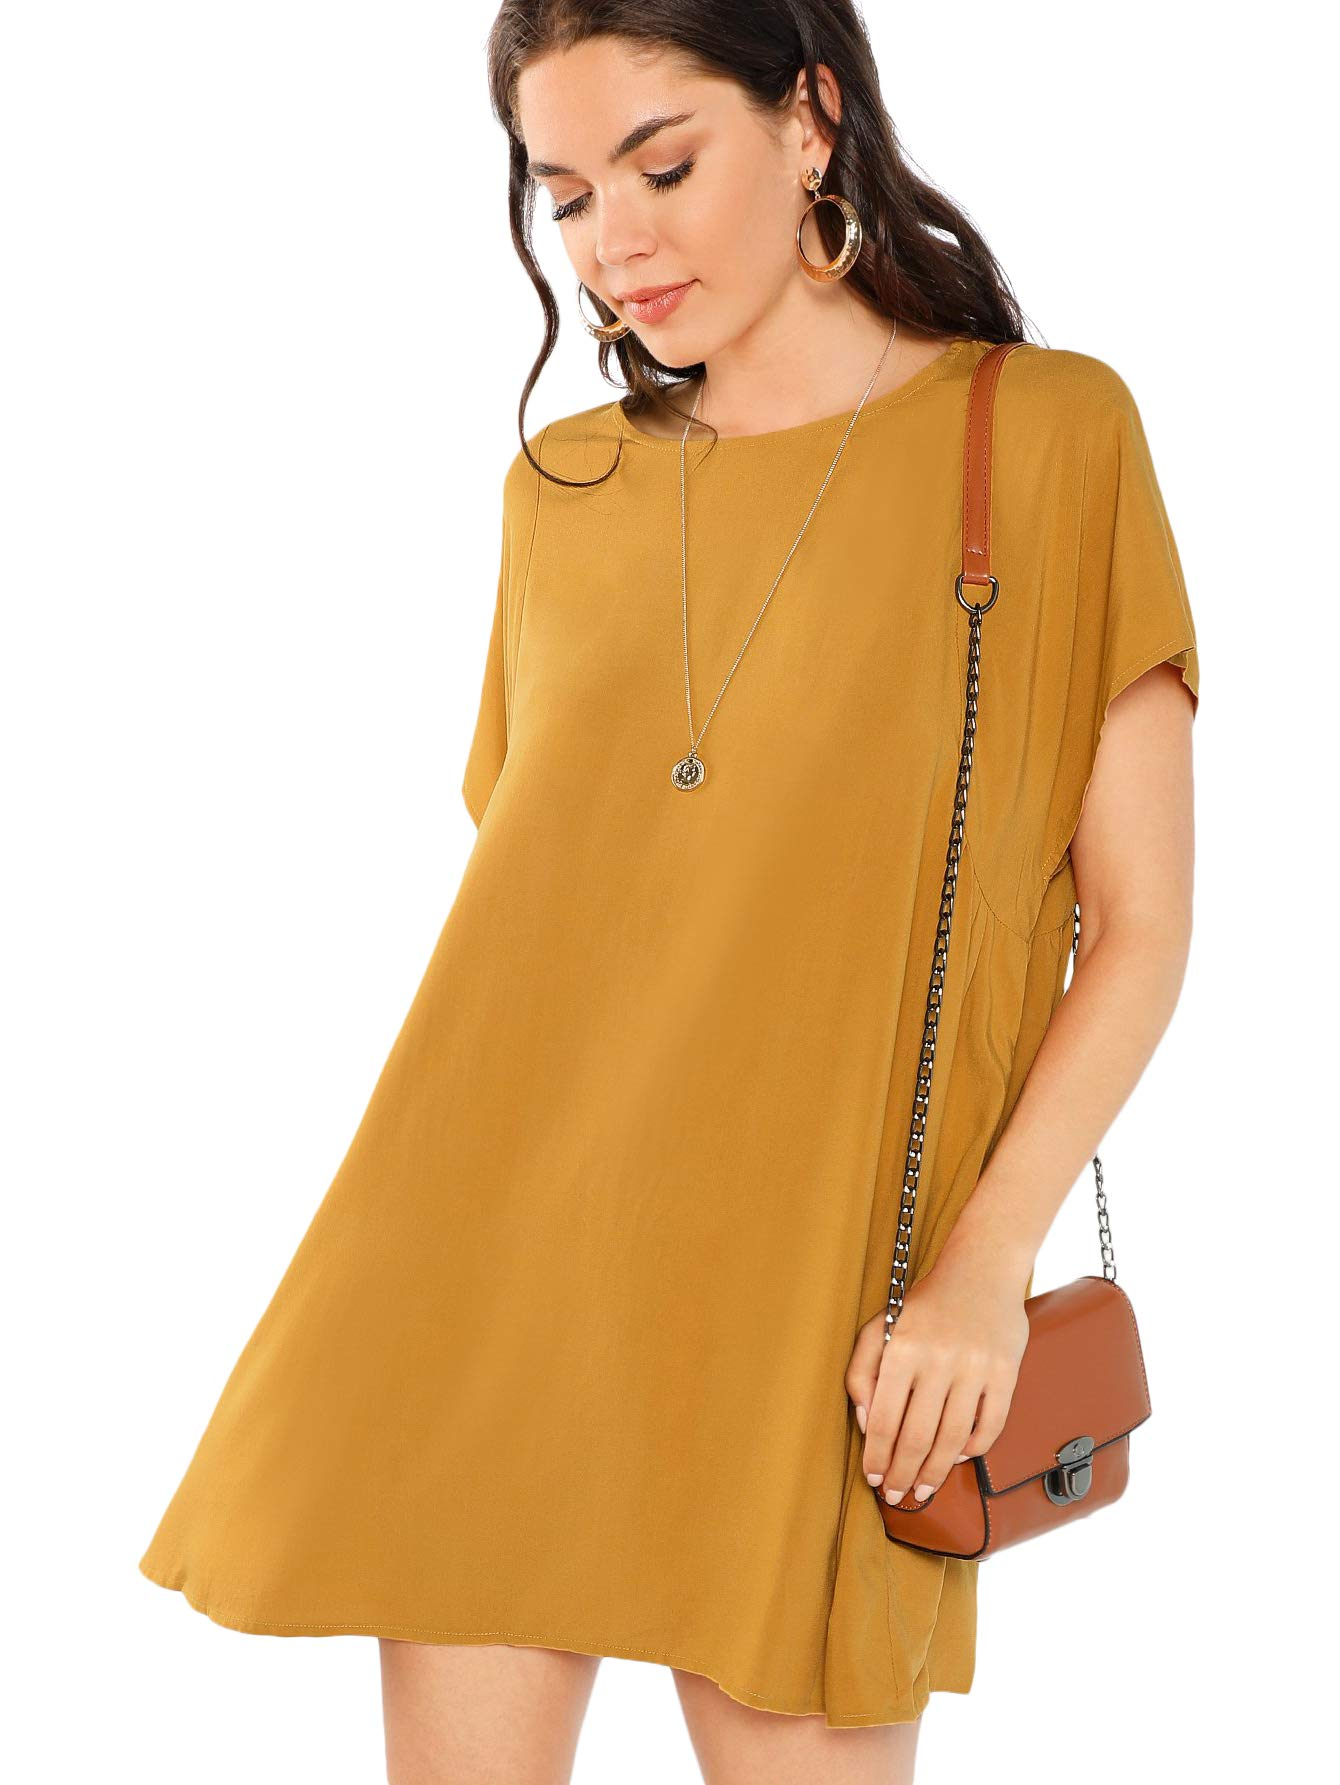 Available at Amazon: Milumia Women's Pocket Side Loose Fit Short Sleeve Round Neck Solid Swing Short Dress